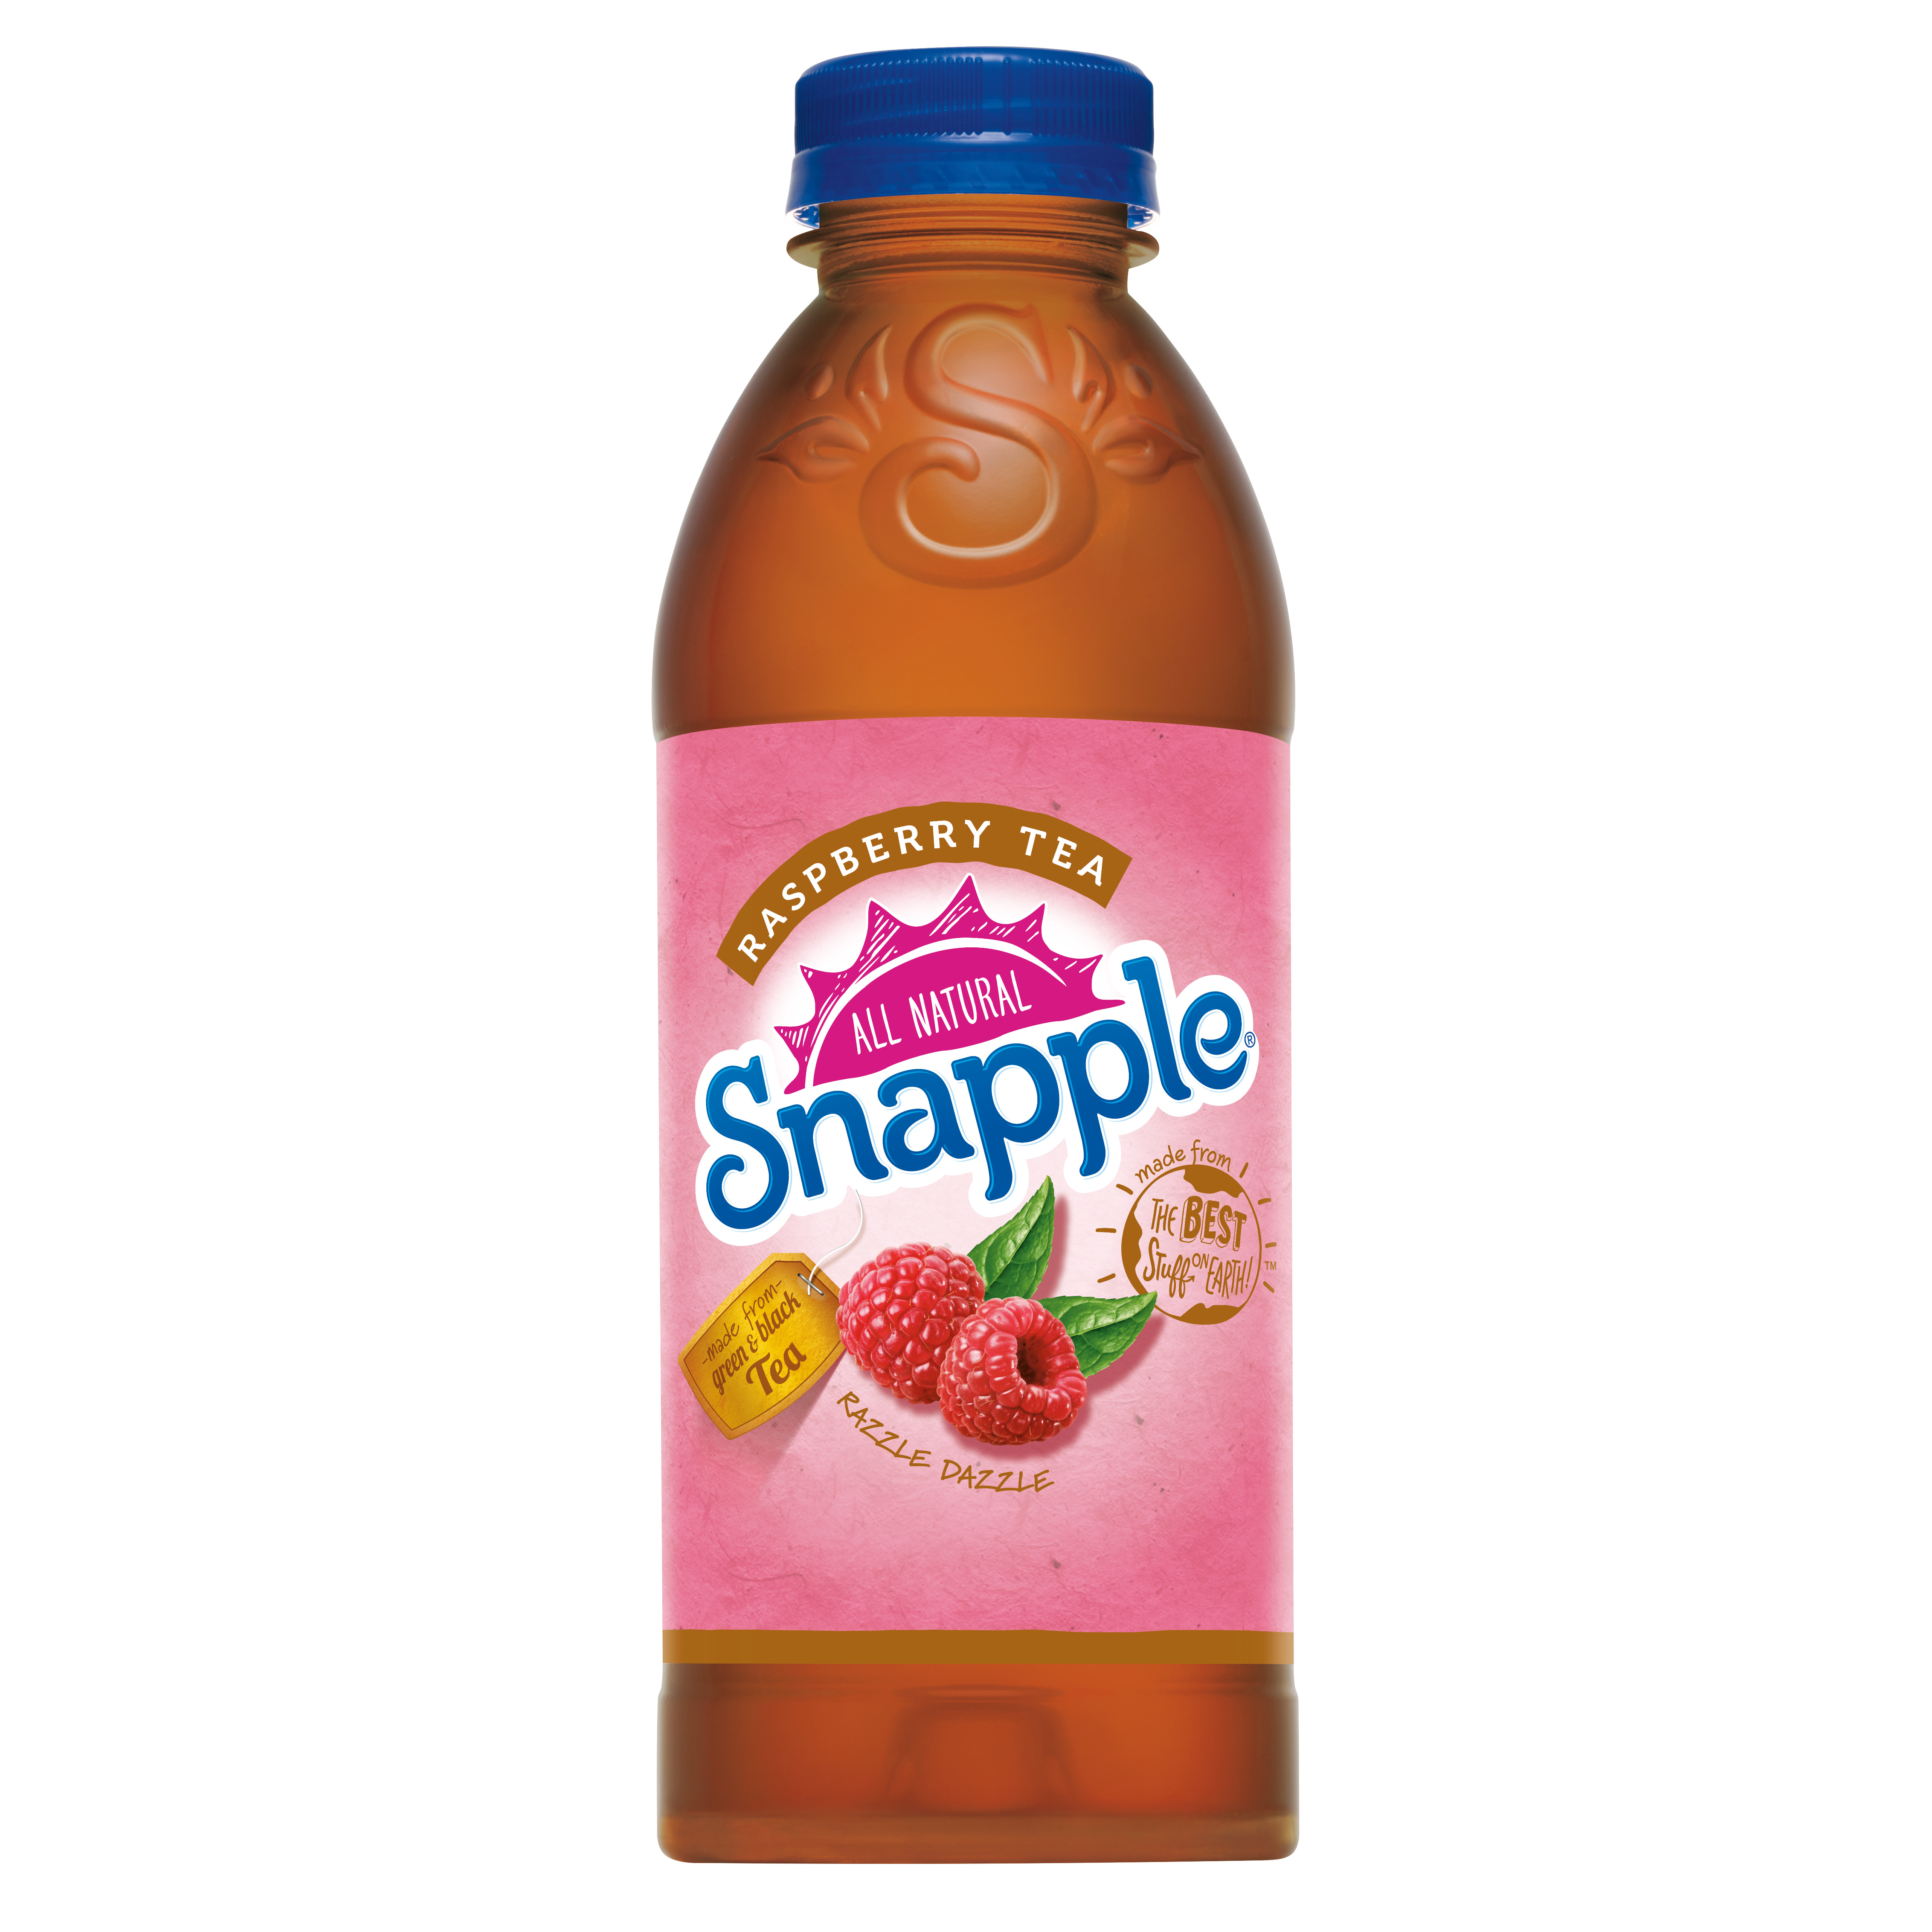 Snapple Raspberry Tea, 20 fl oz